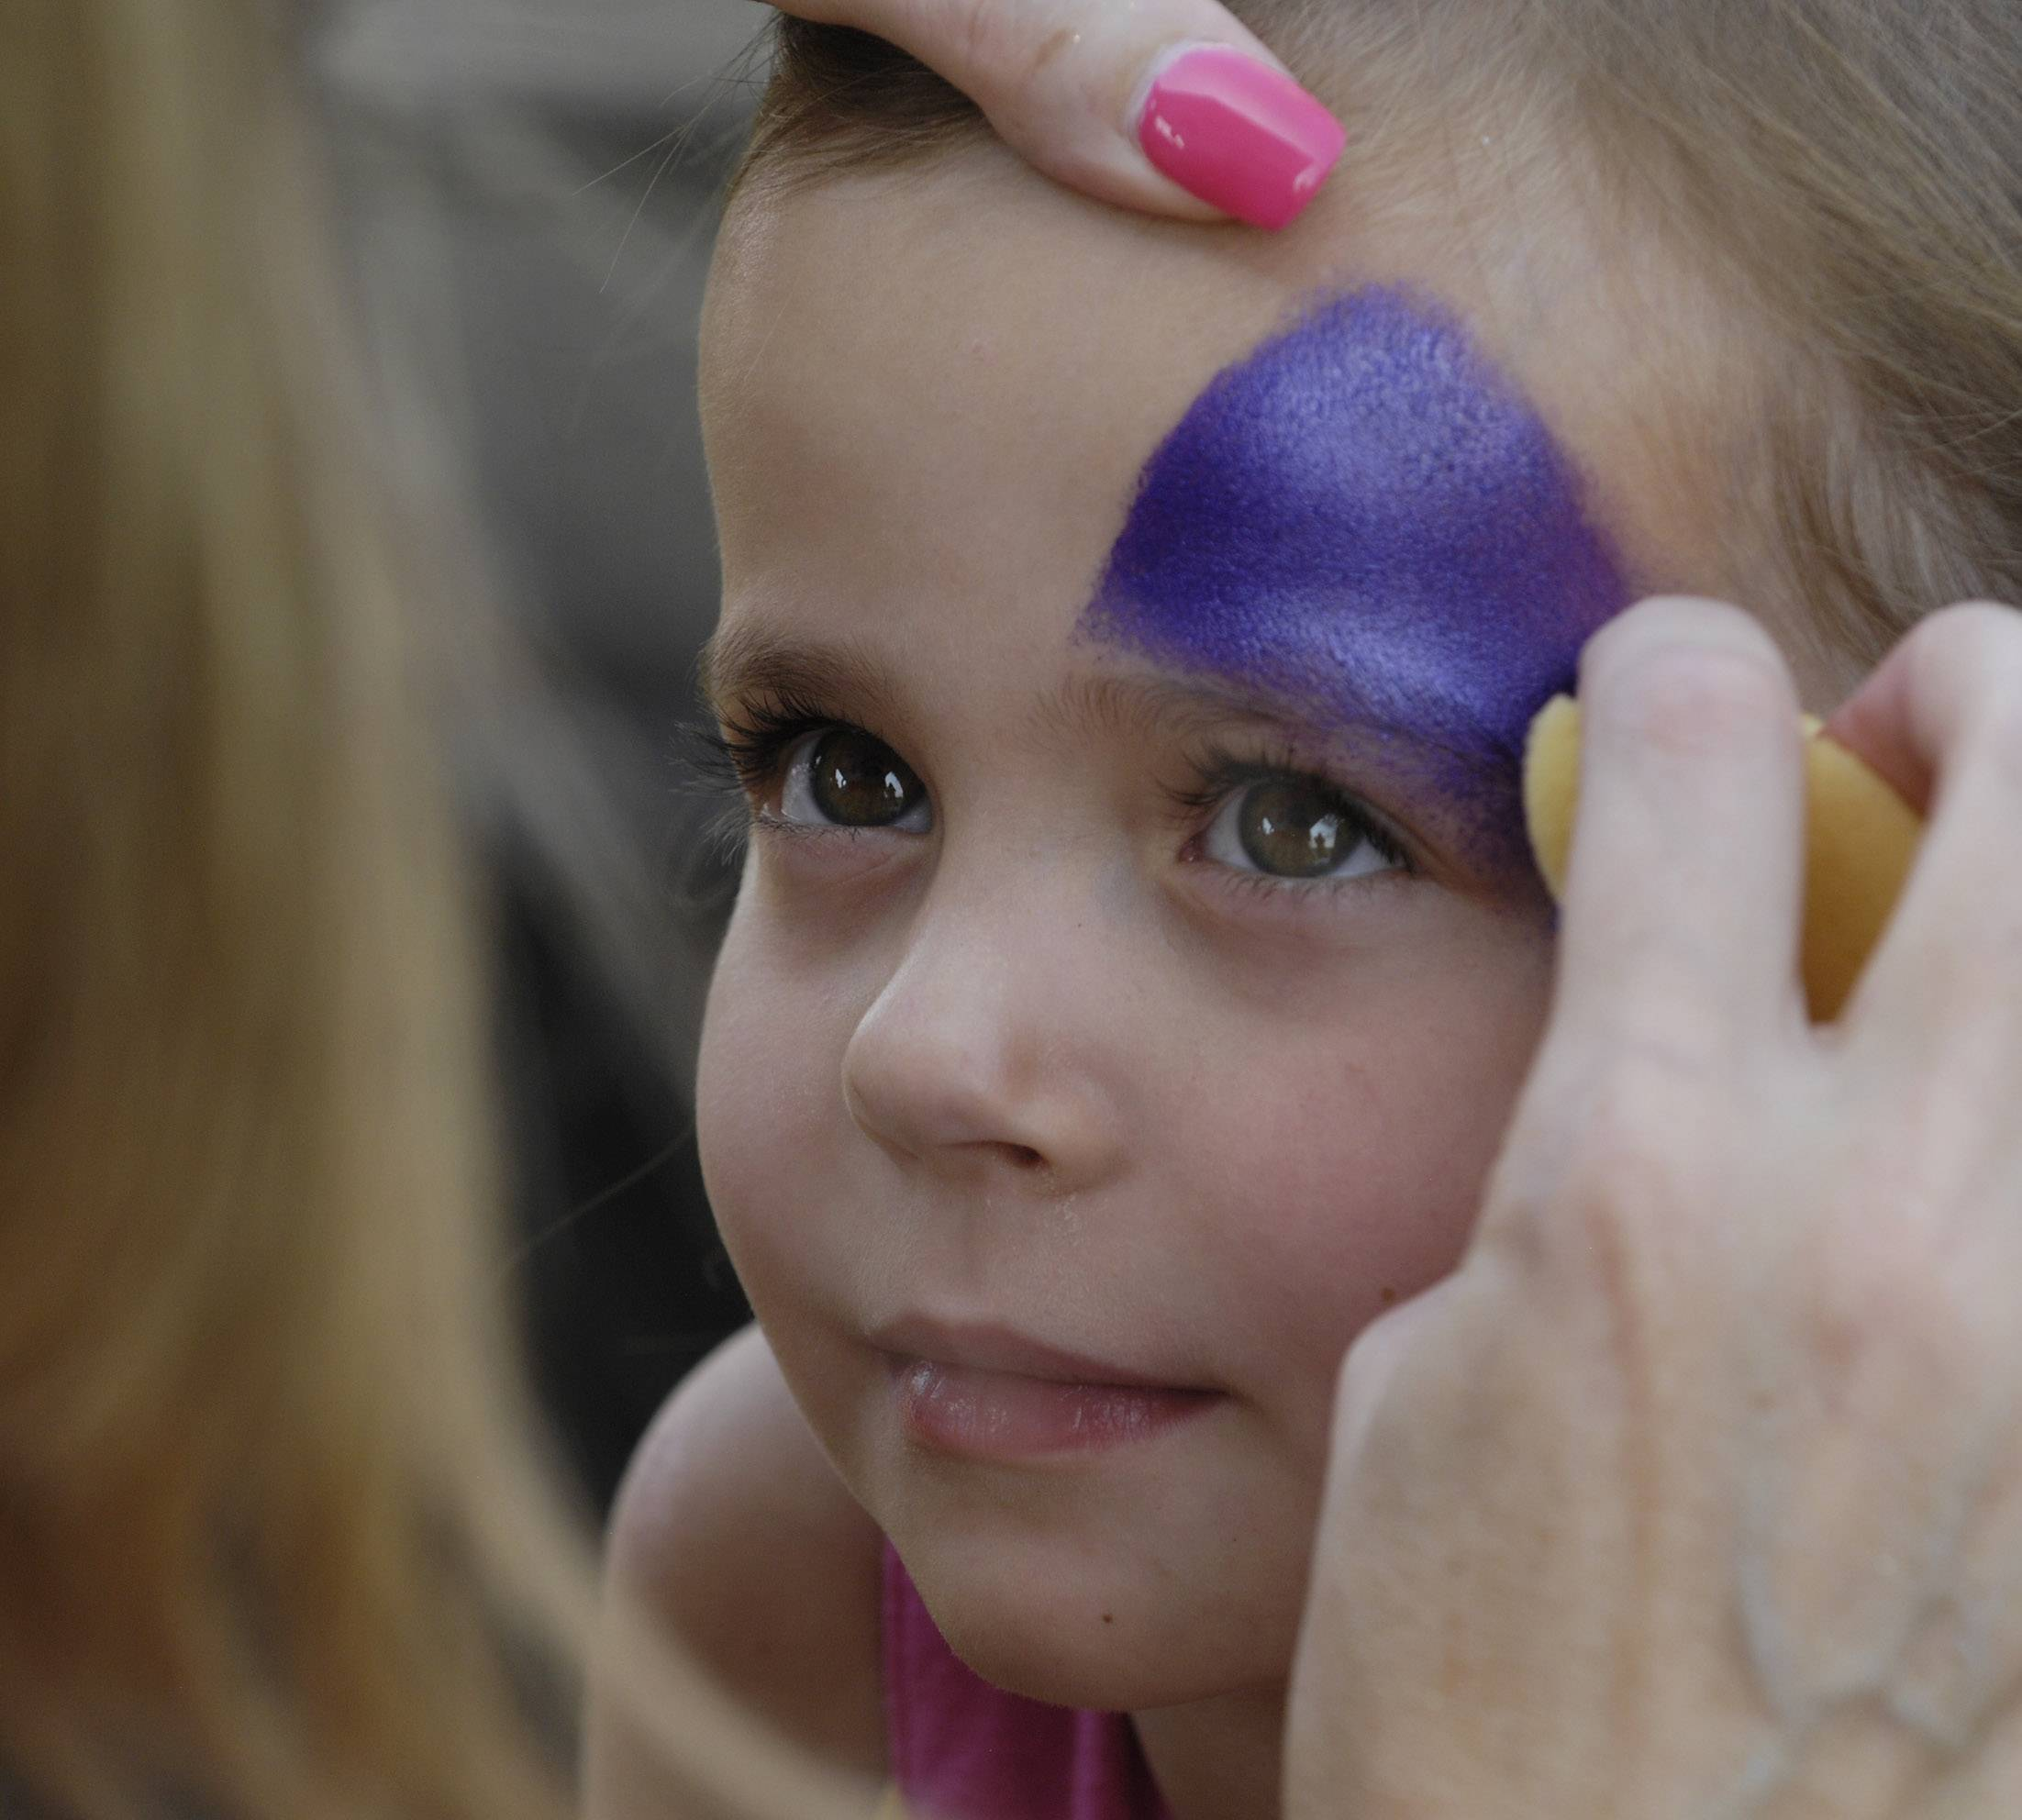 Kiya Chesak, 4, of Algonquin, has her face painted Saturday during the Party in the Park at Highpoint Park in Hoffman Estates. Her mom works for the Hoffman Estates Park District.